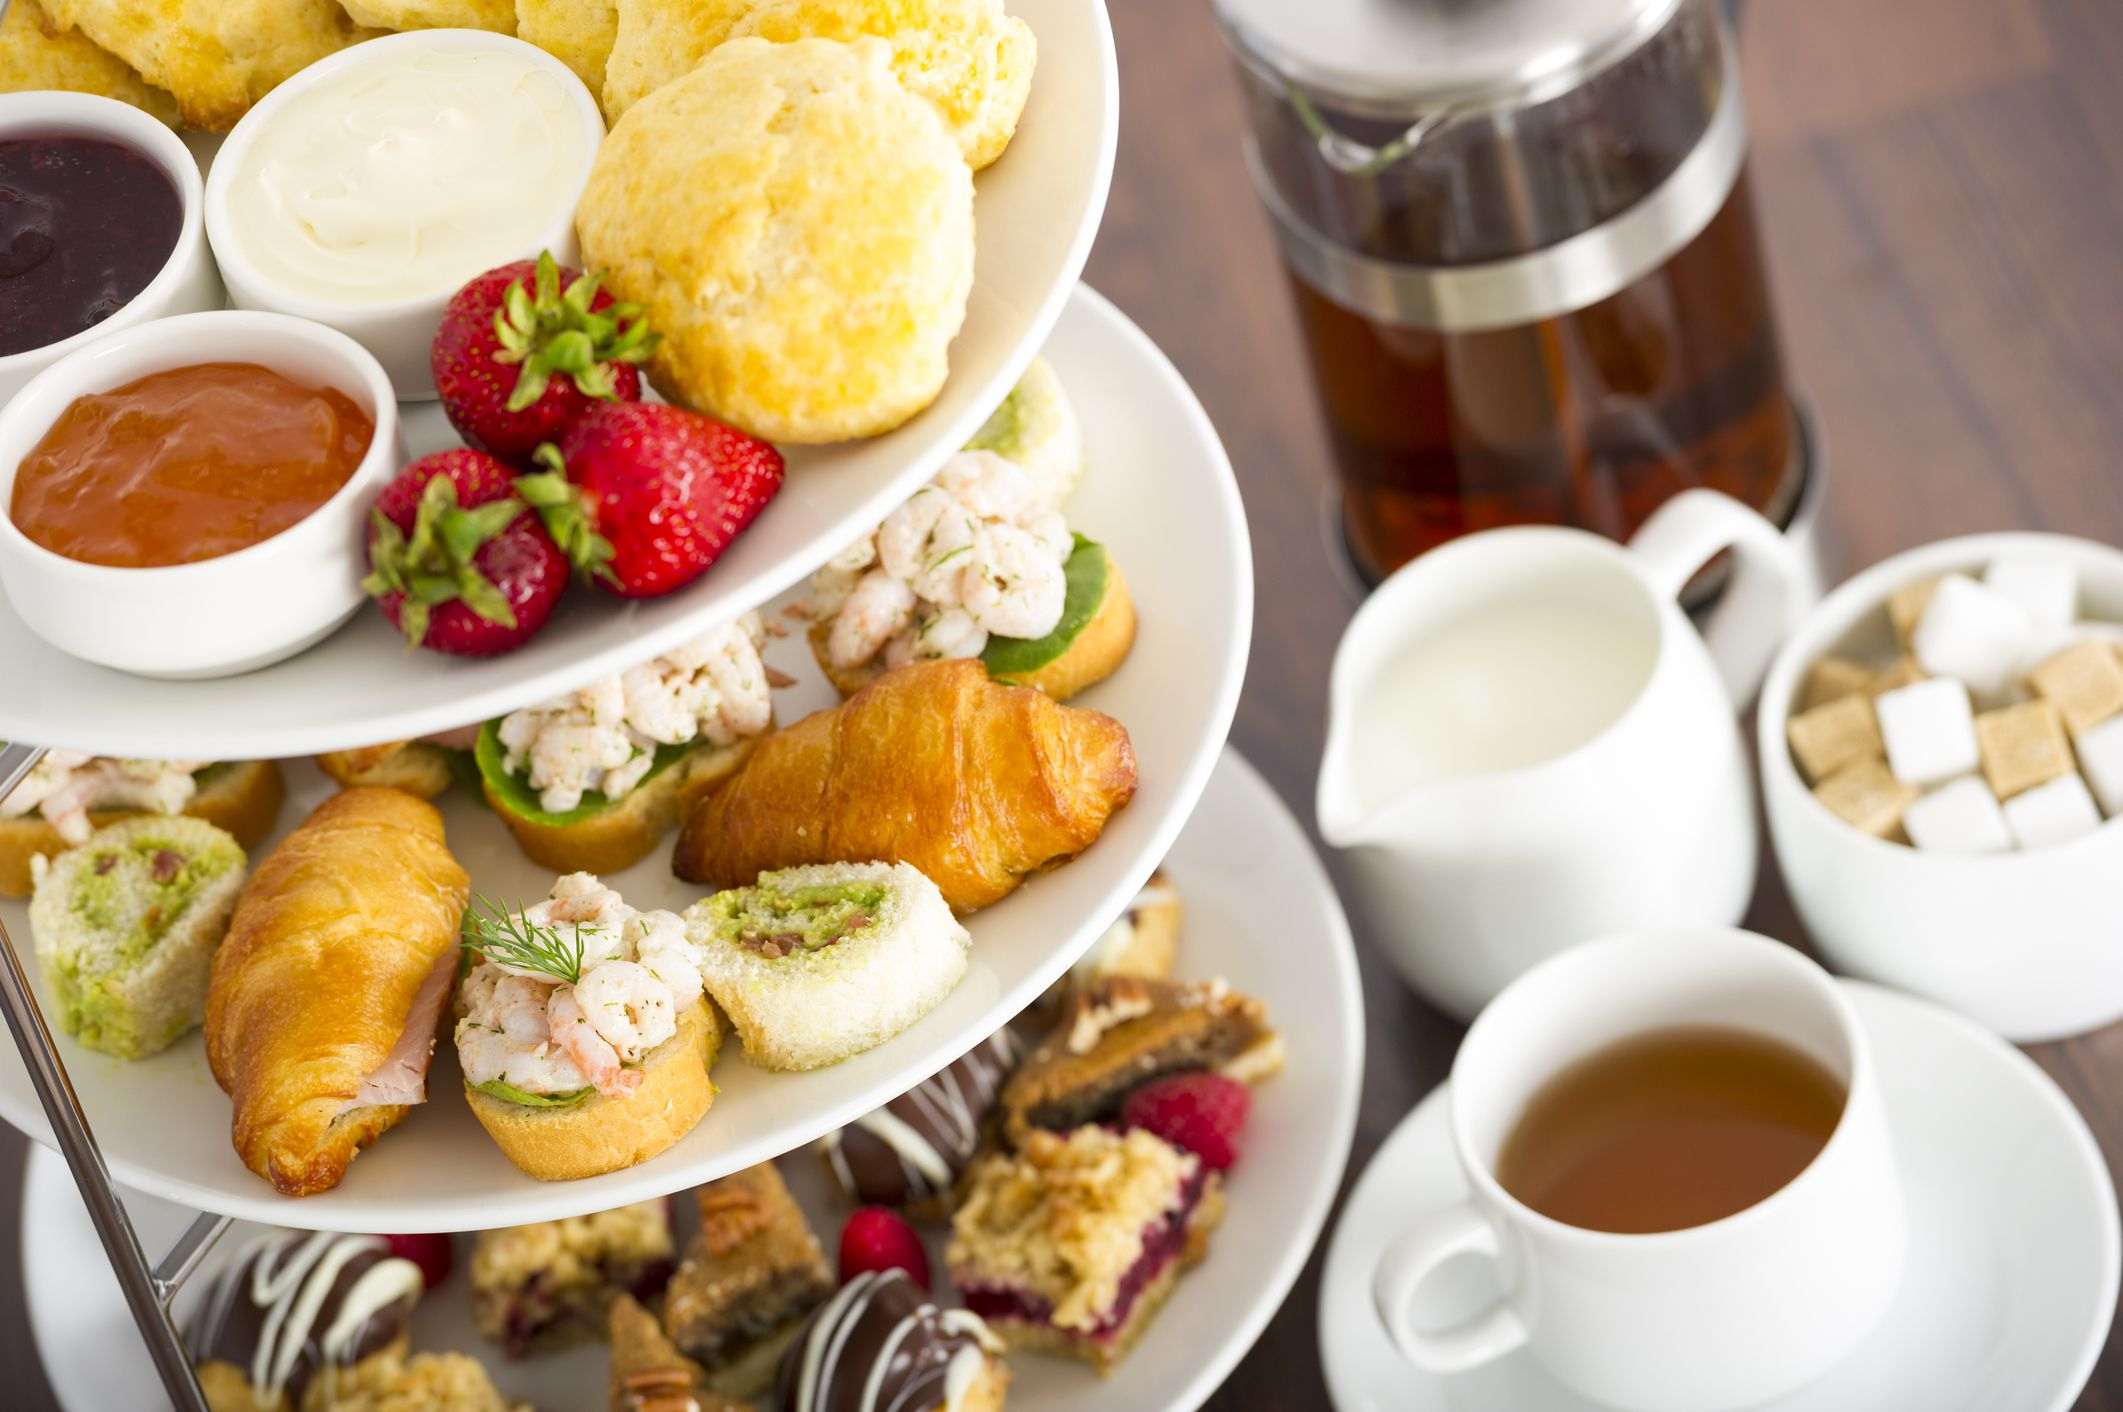 Cuisine Meaning English Difference Between Afternoon Tea And High Tea